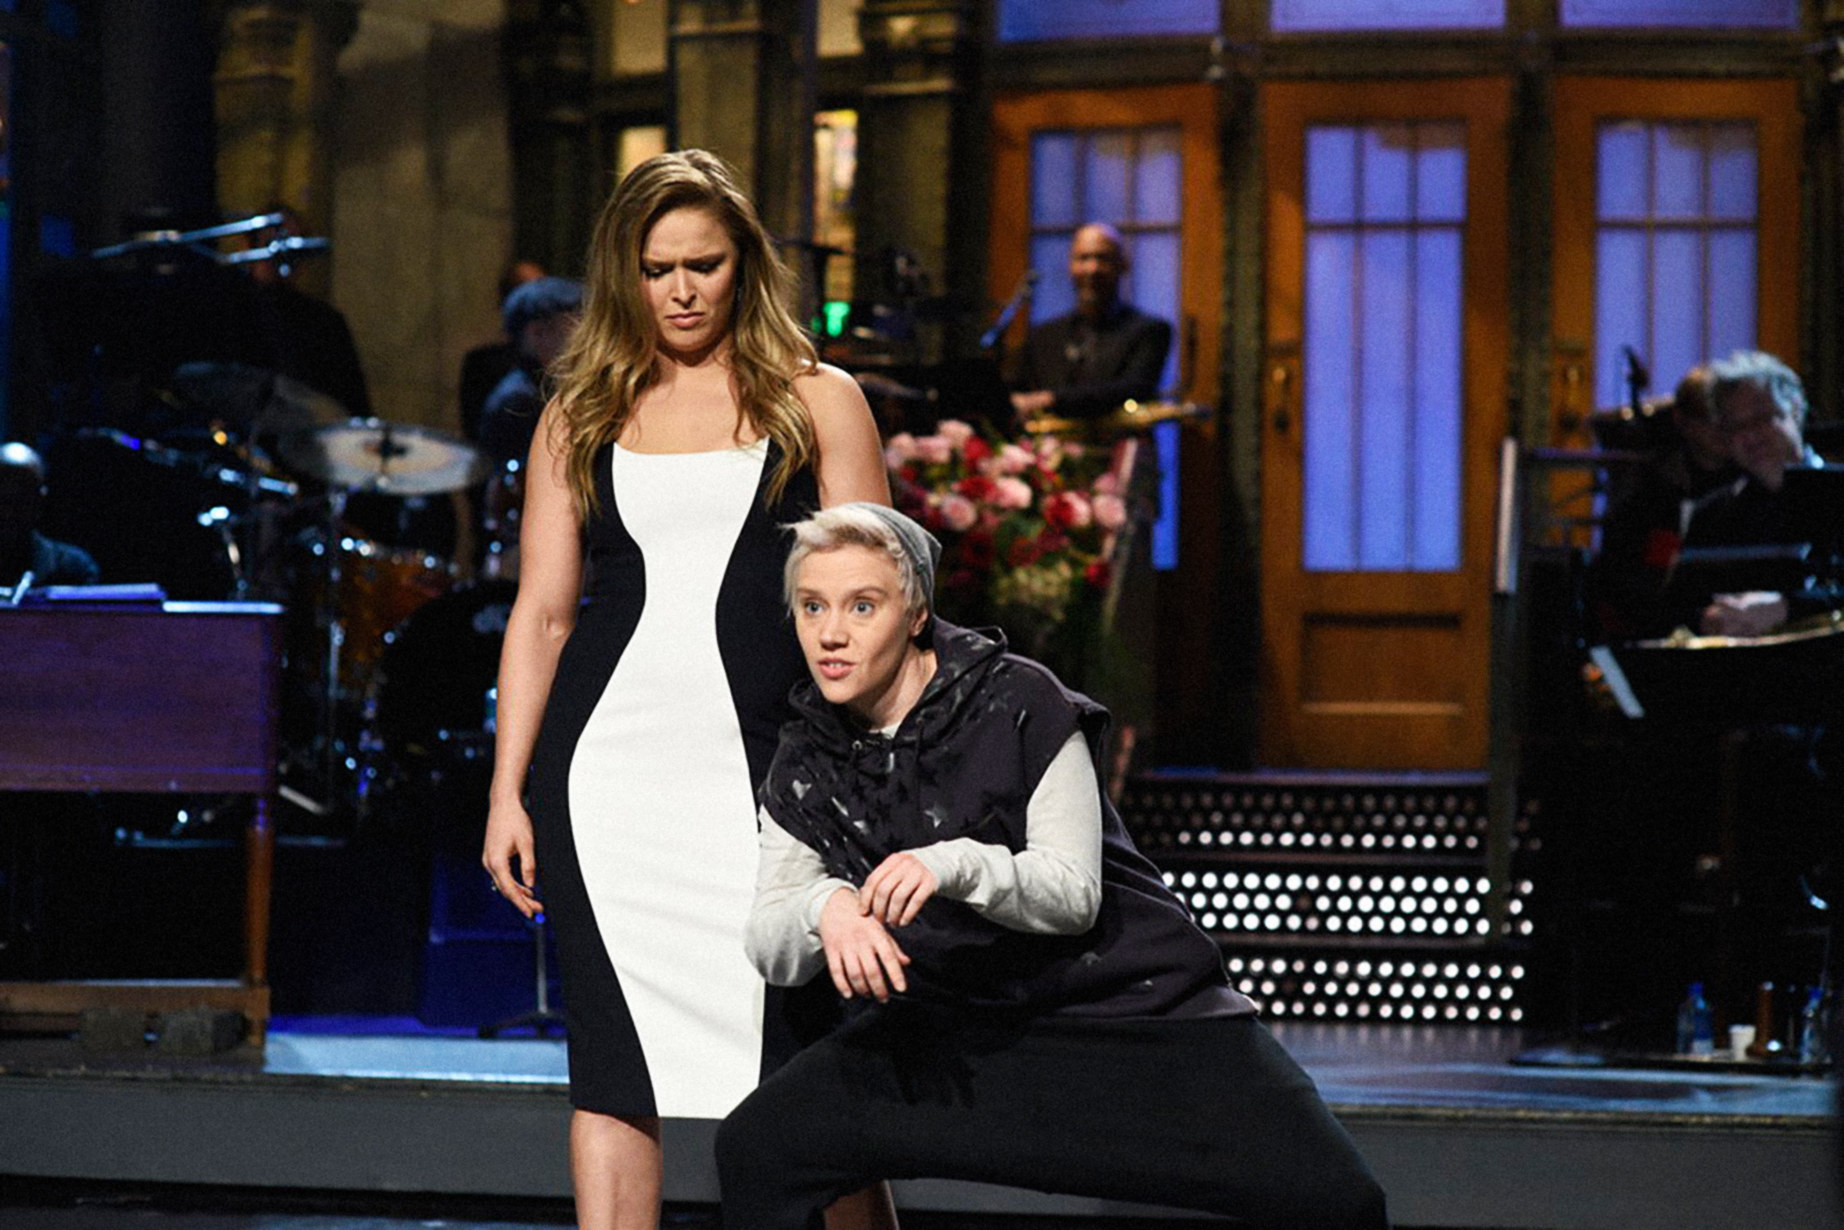 """Ronda Rousey delivering an """"SNL"""" monologue with Kate McKinnon as Justin Bieber"""